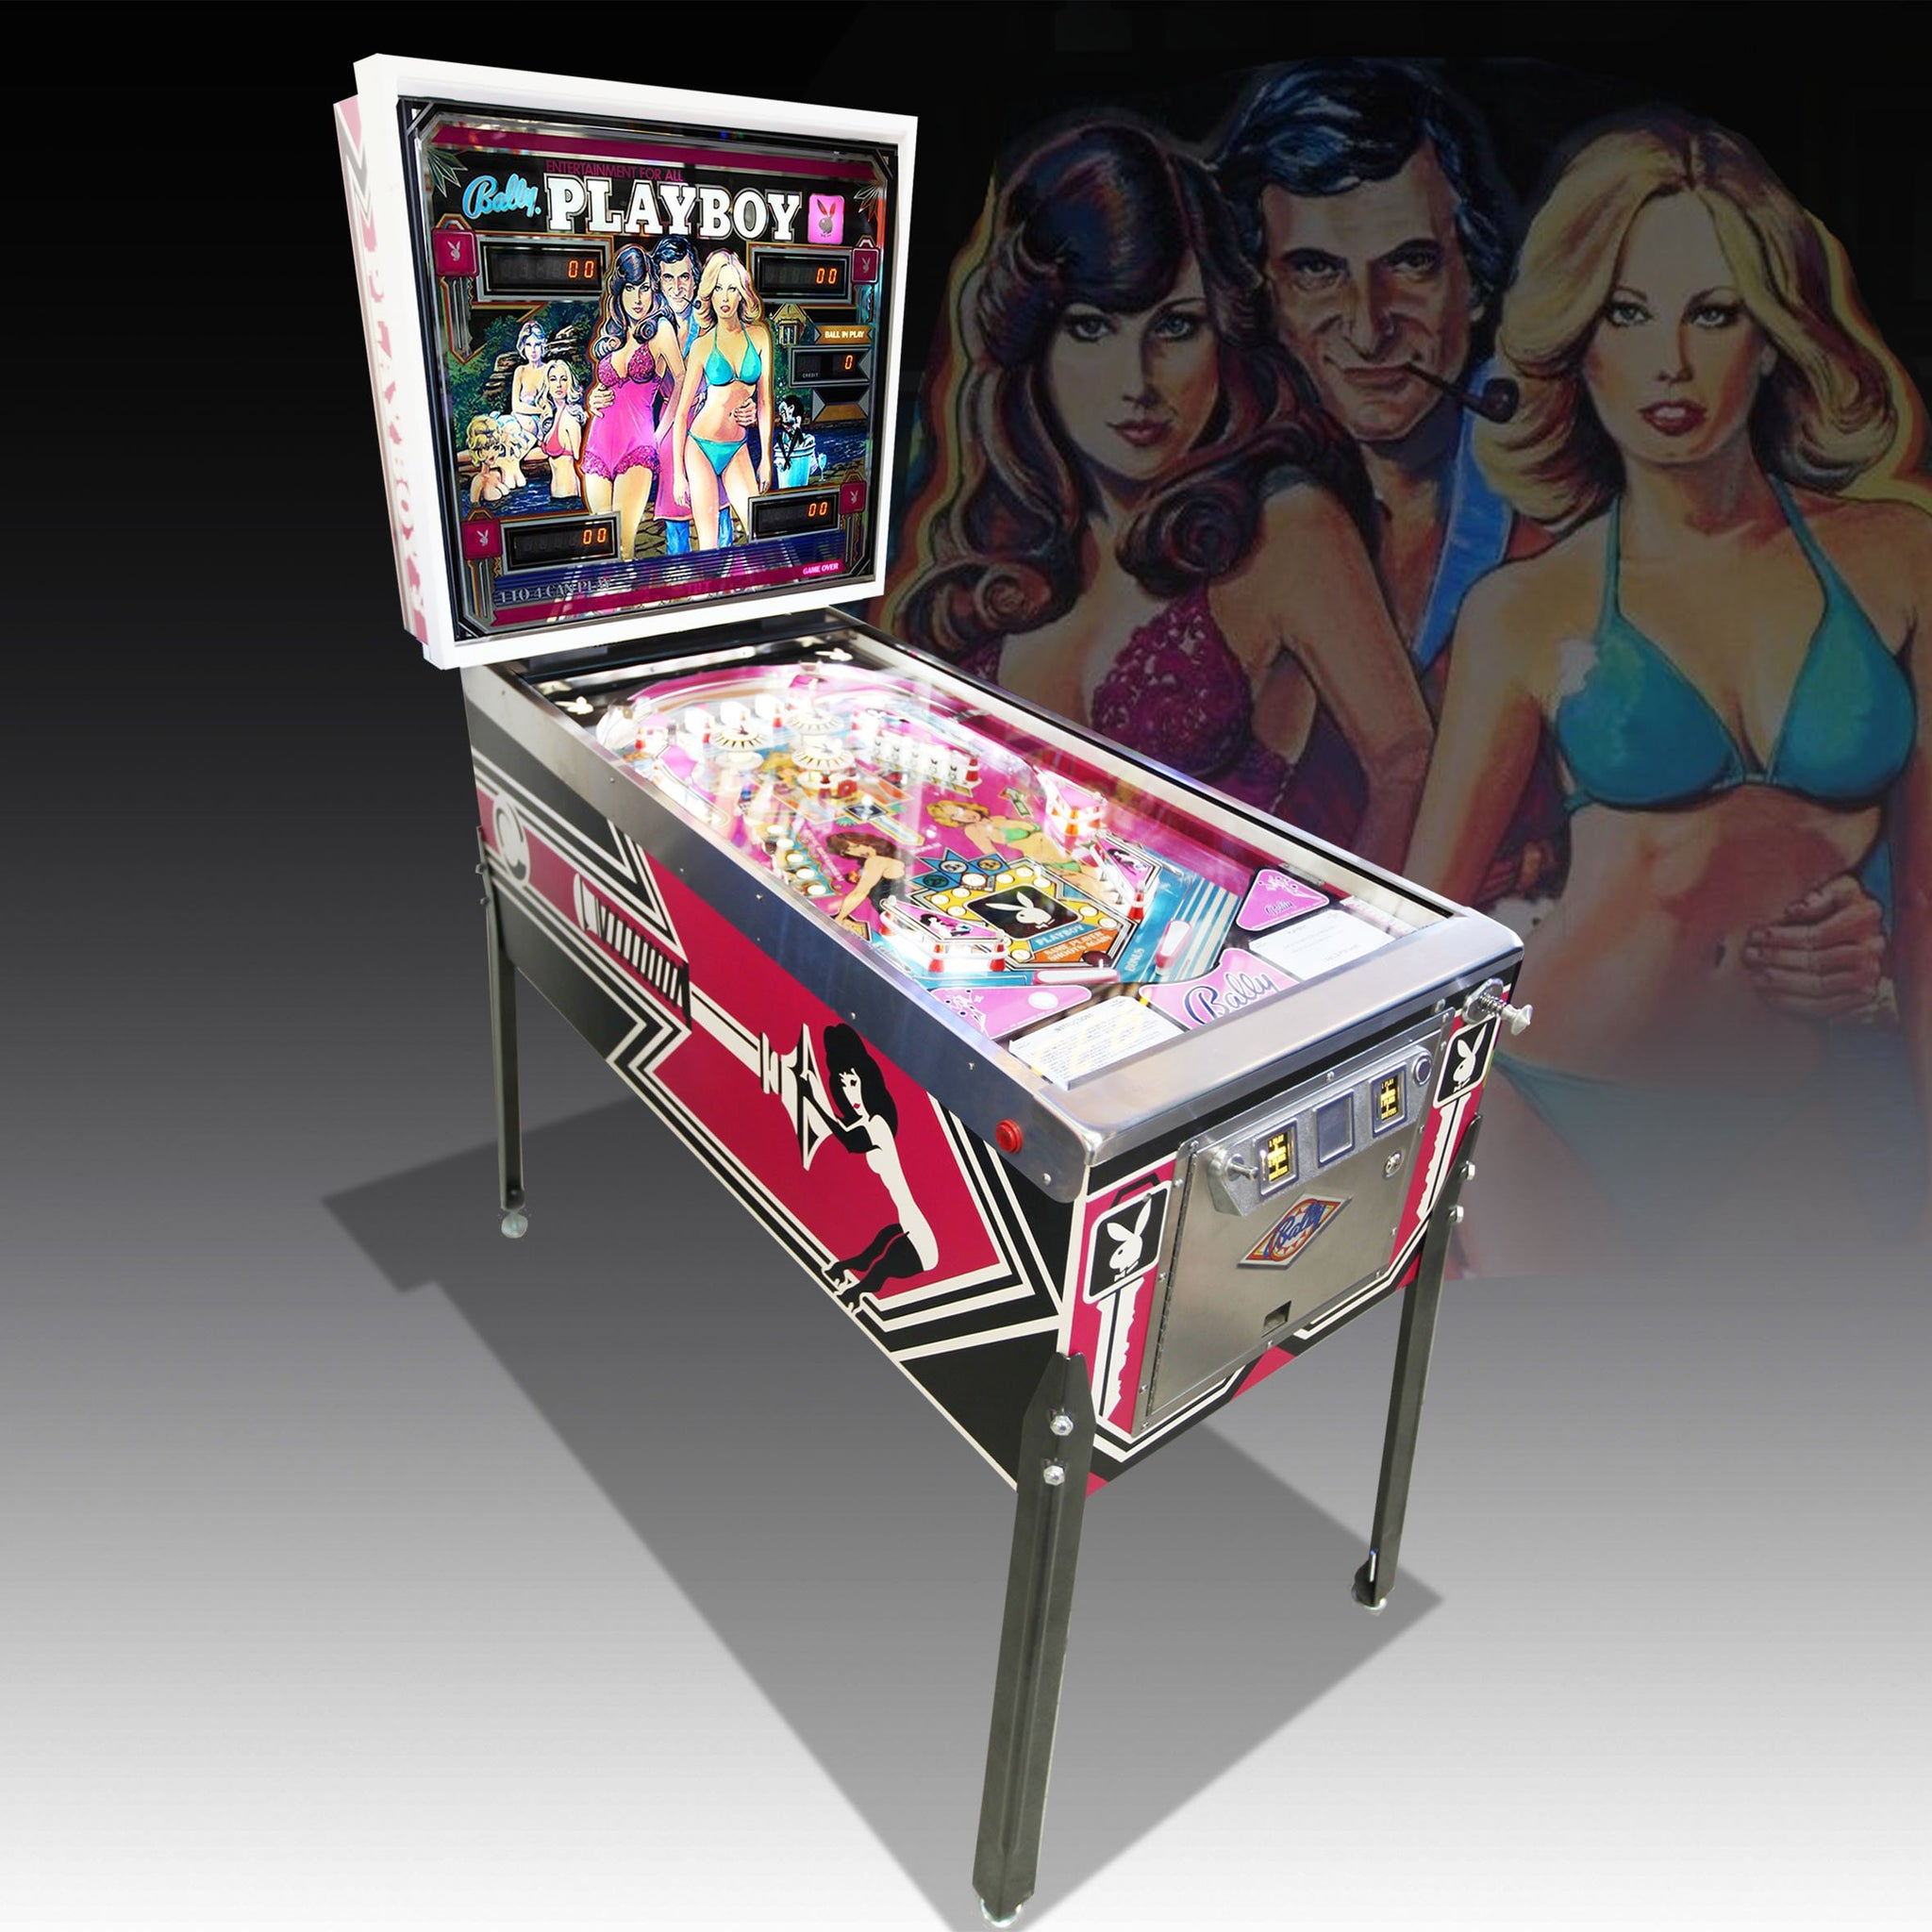 Playboy Pinball Machine